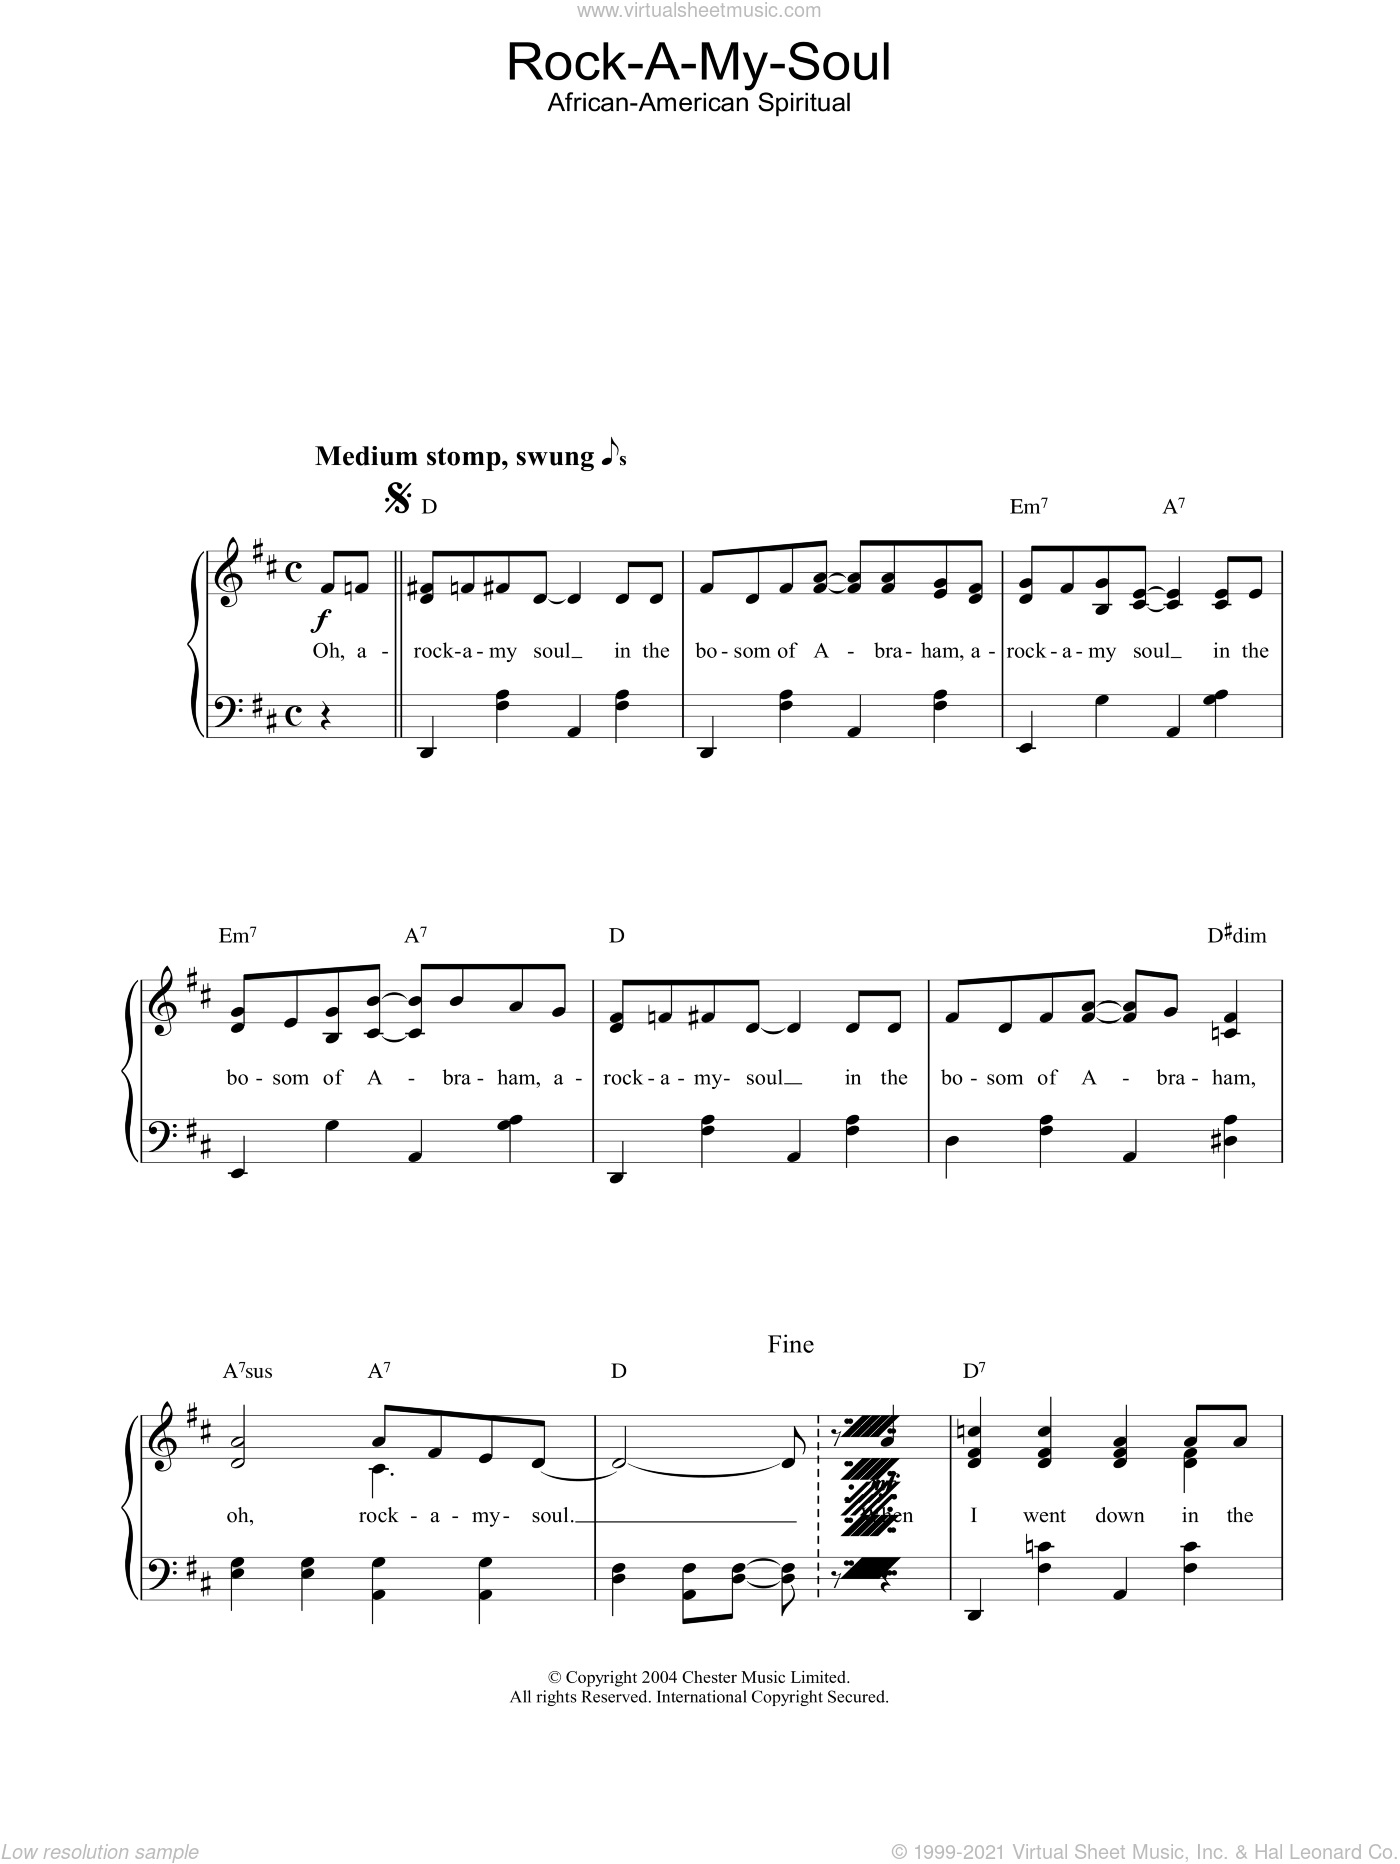 Rock A My Soul sheet music for piano solo. Score Image Preview.